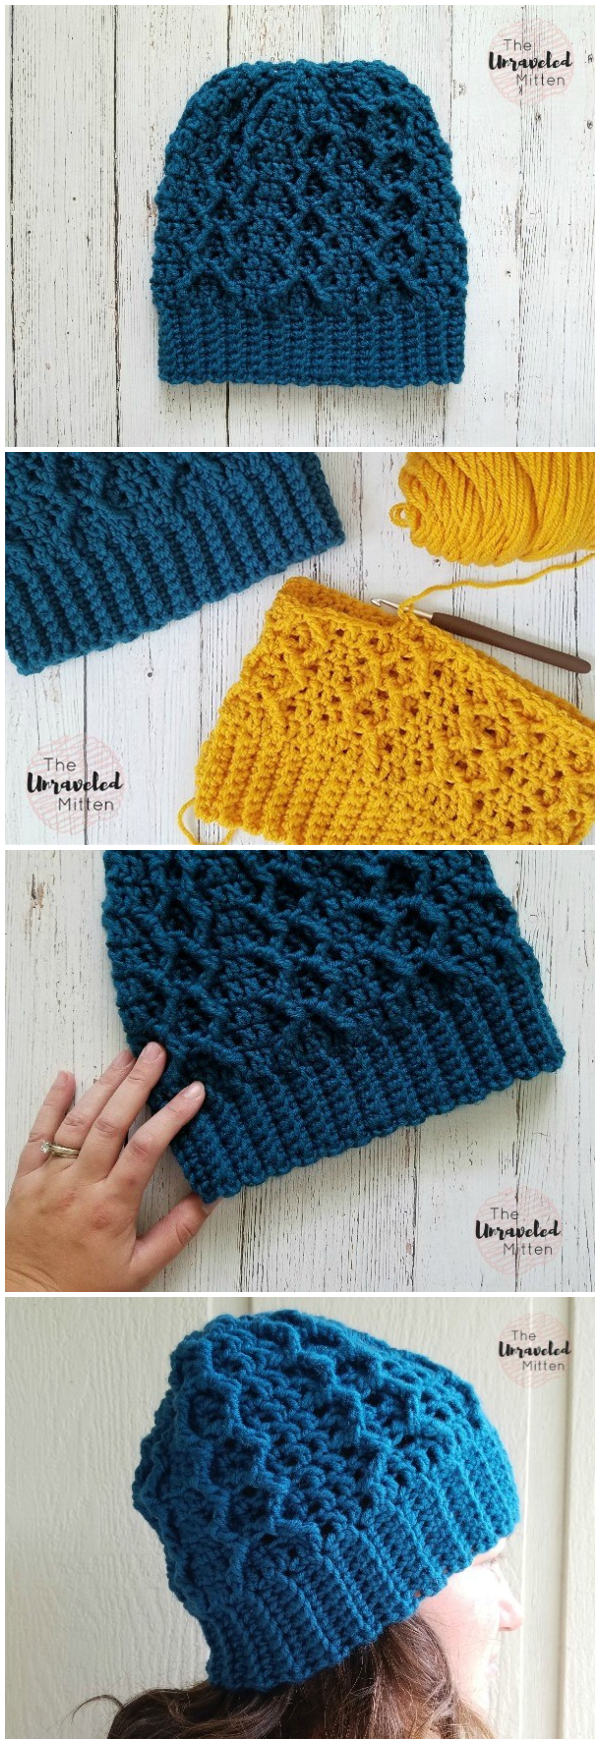 Honeycomb Cabled Beanie: Free Crochet Pattern